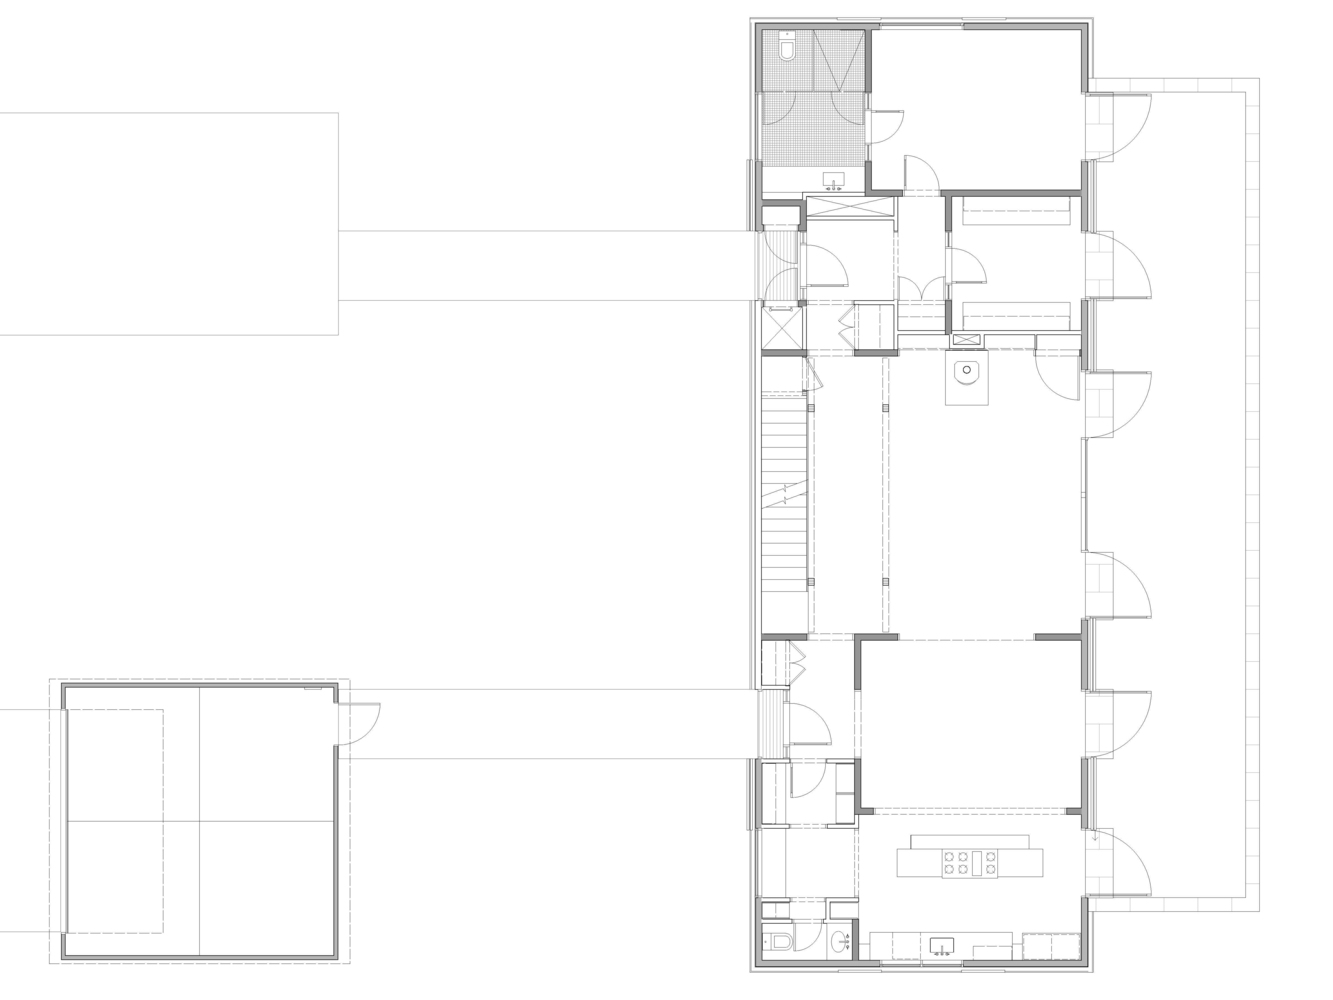 gallery of pennsylvania farmhouse cutler anderson architects 11 pennsylvania farmhouse floor plan